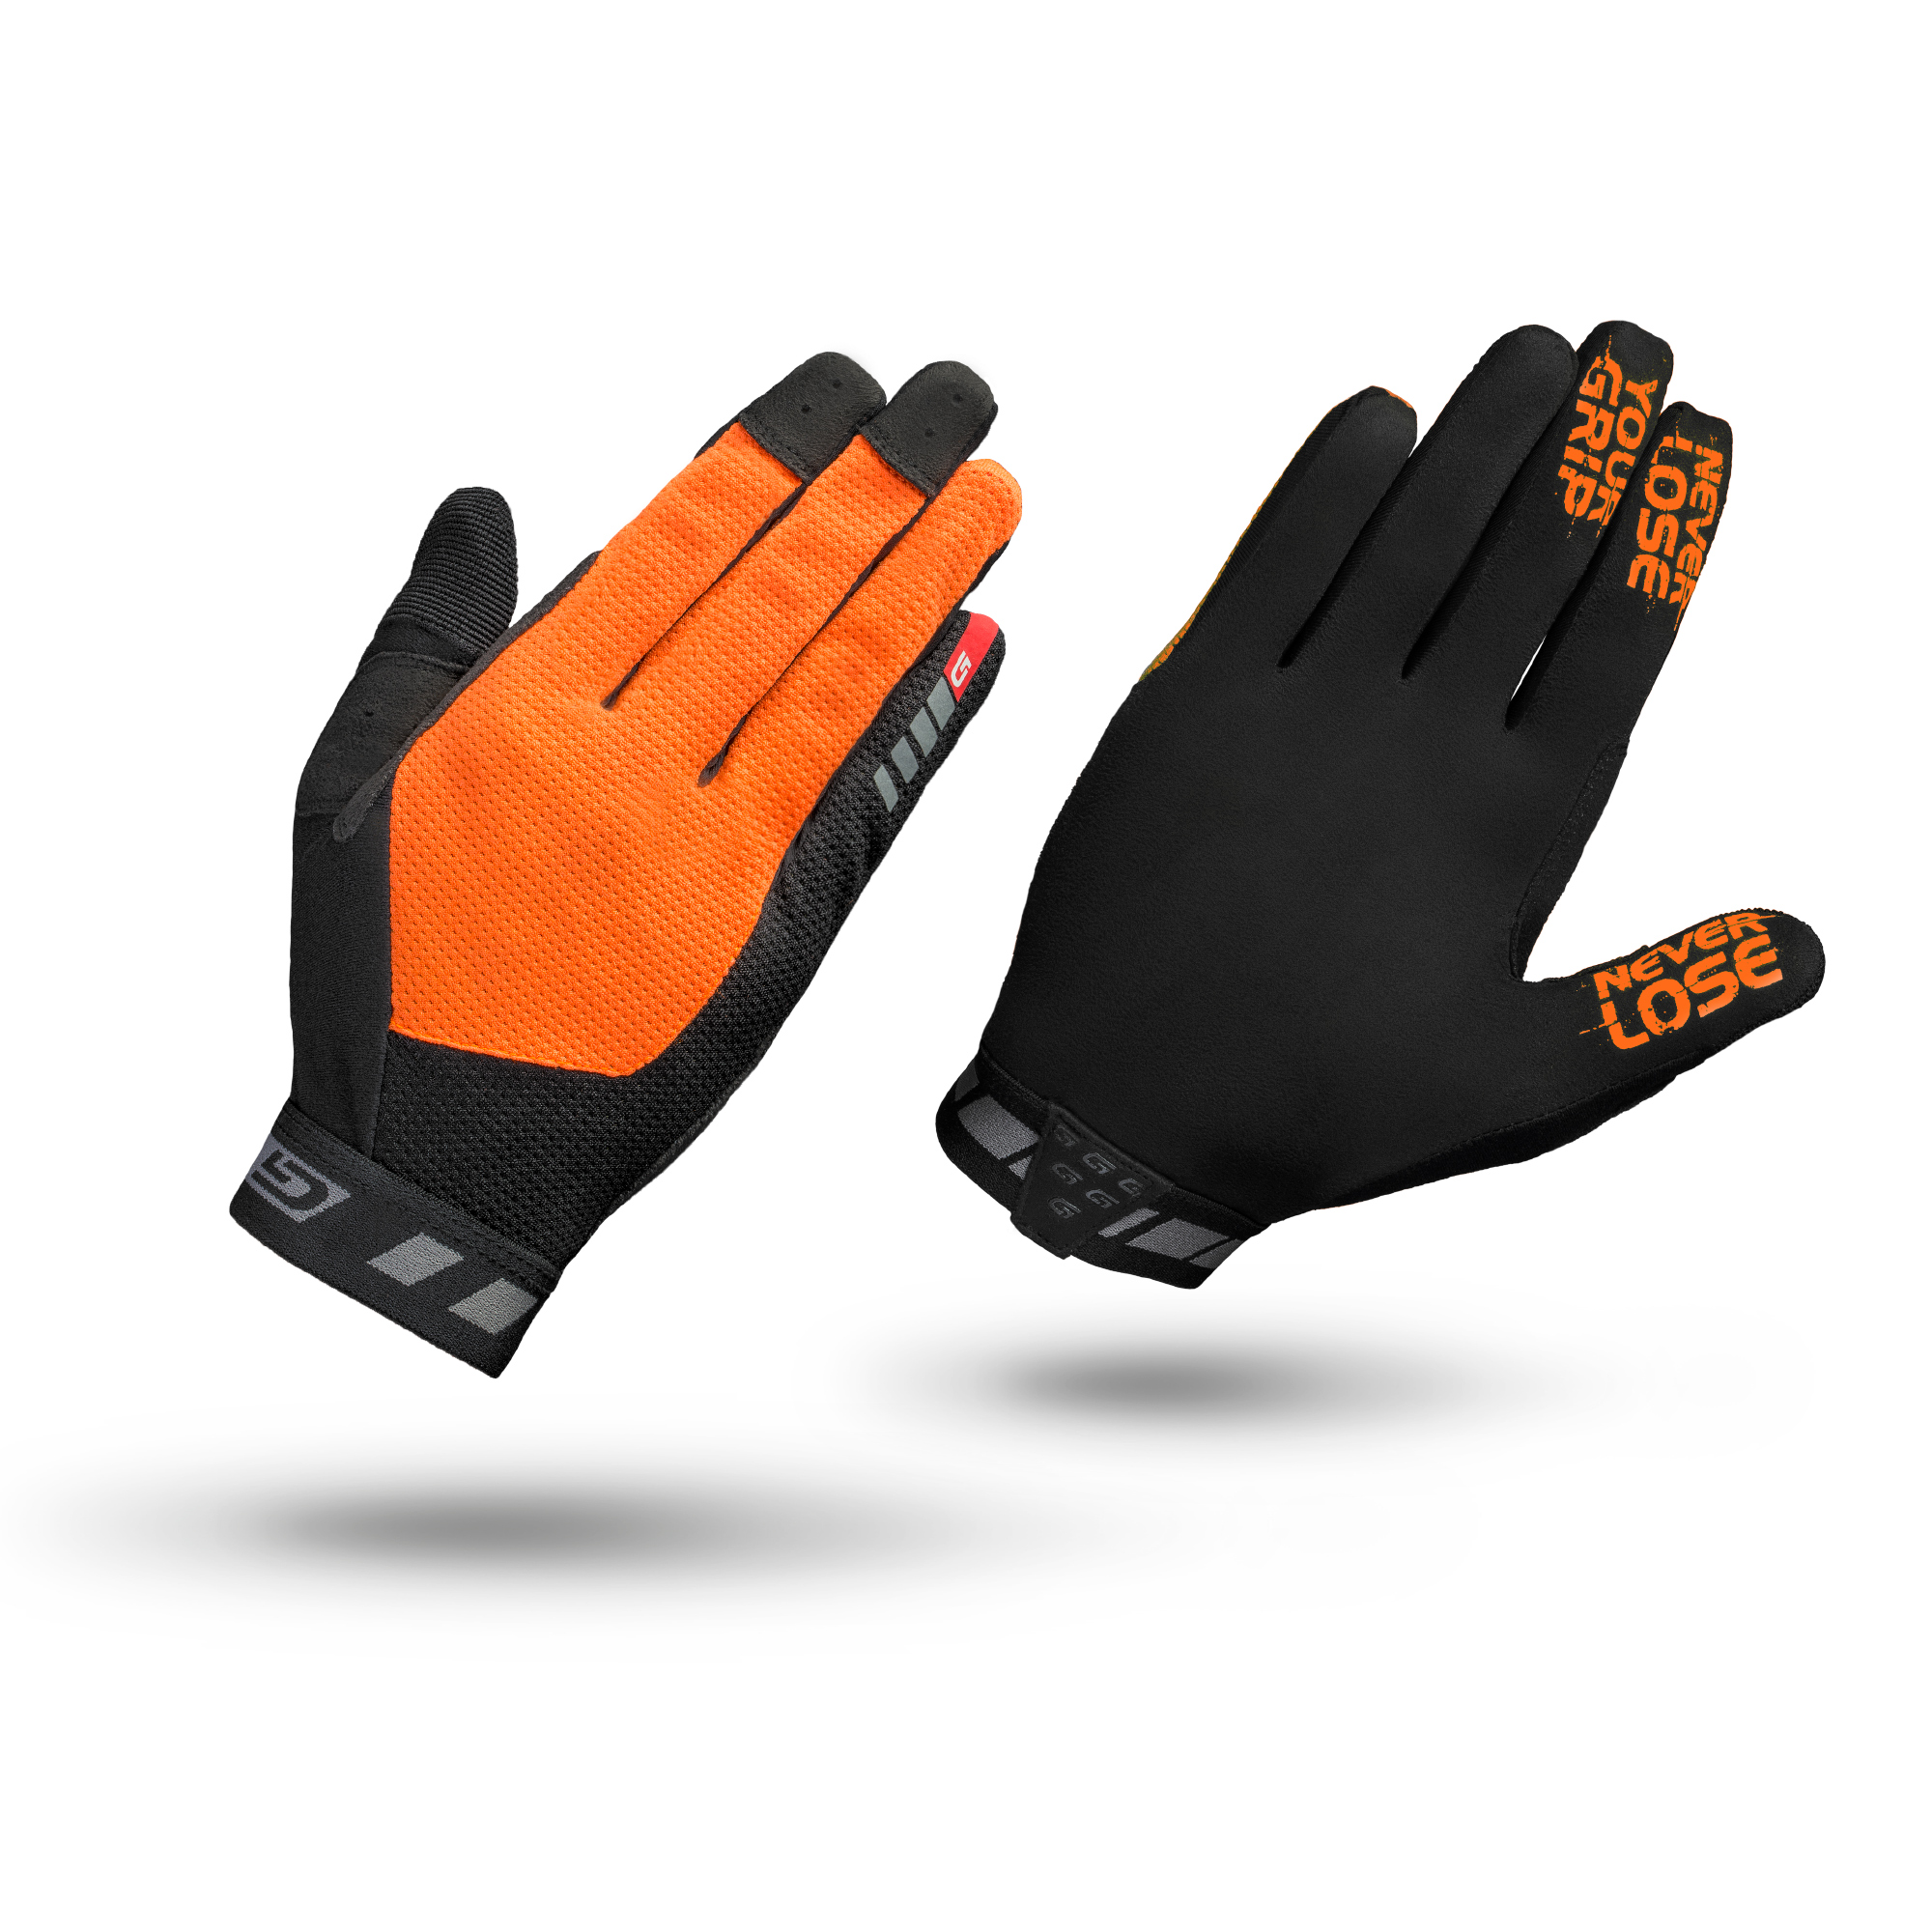 GripGrab 1064 Vertical - Cykelhandsker til MTB - Lang - Orange/Sort | Gloves